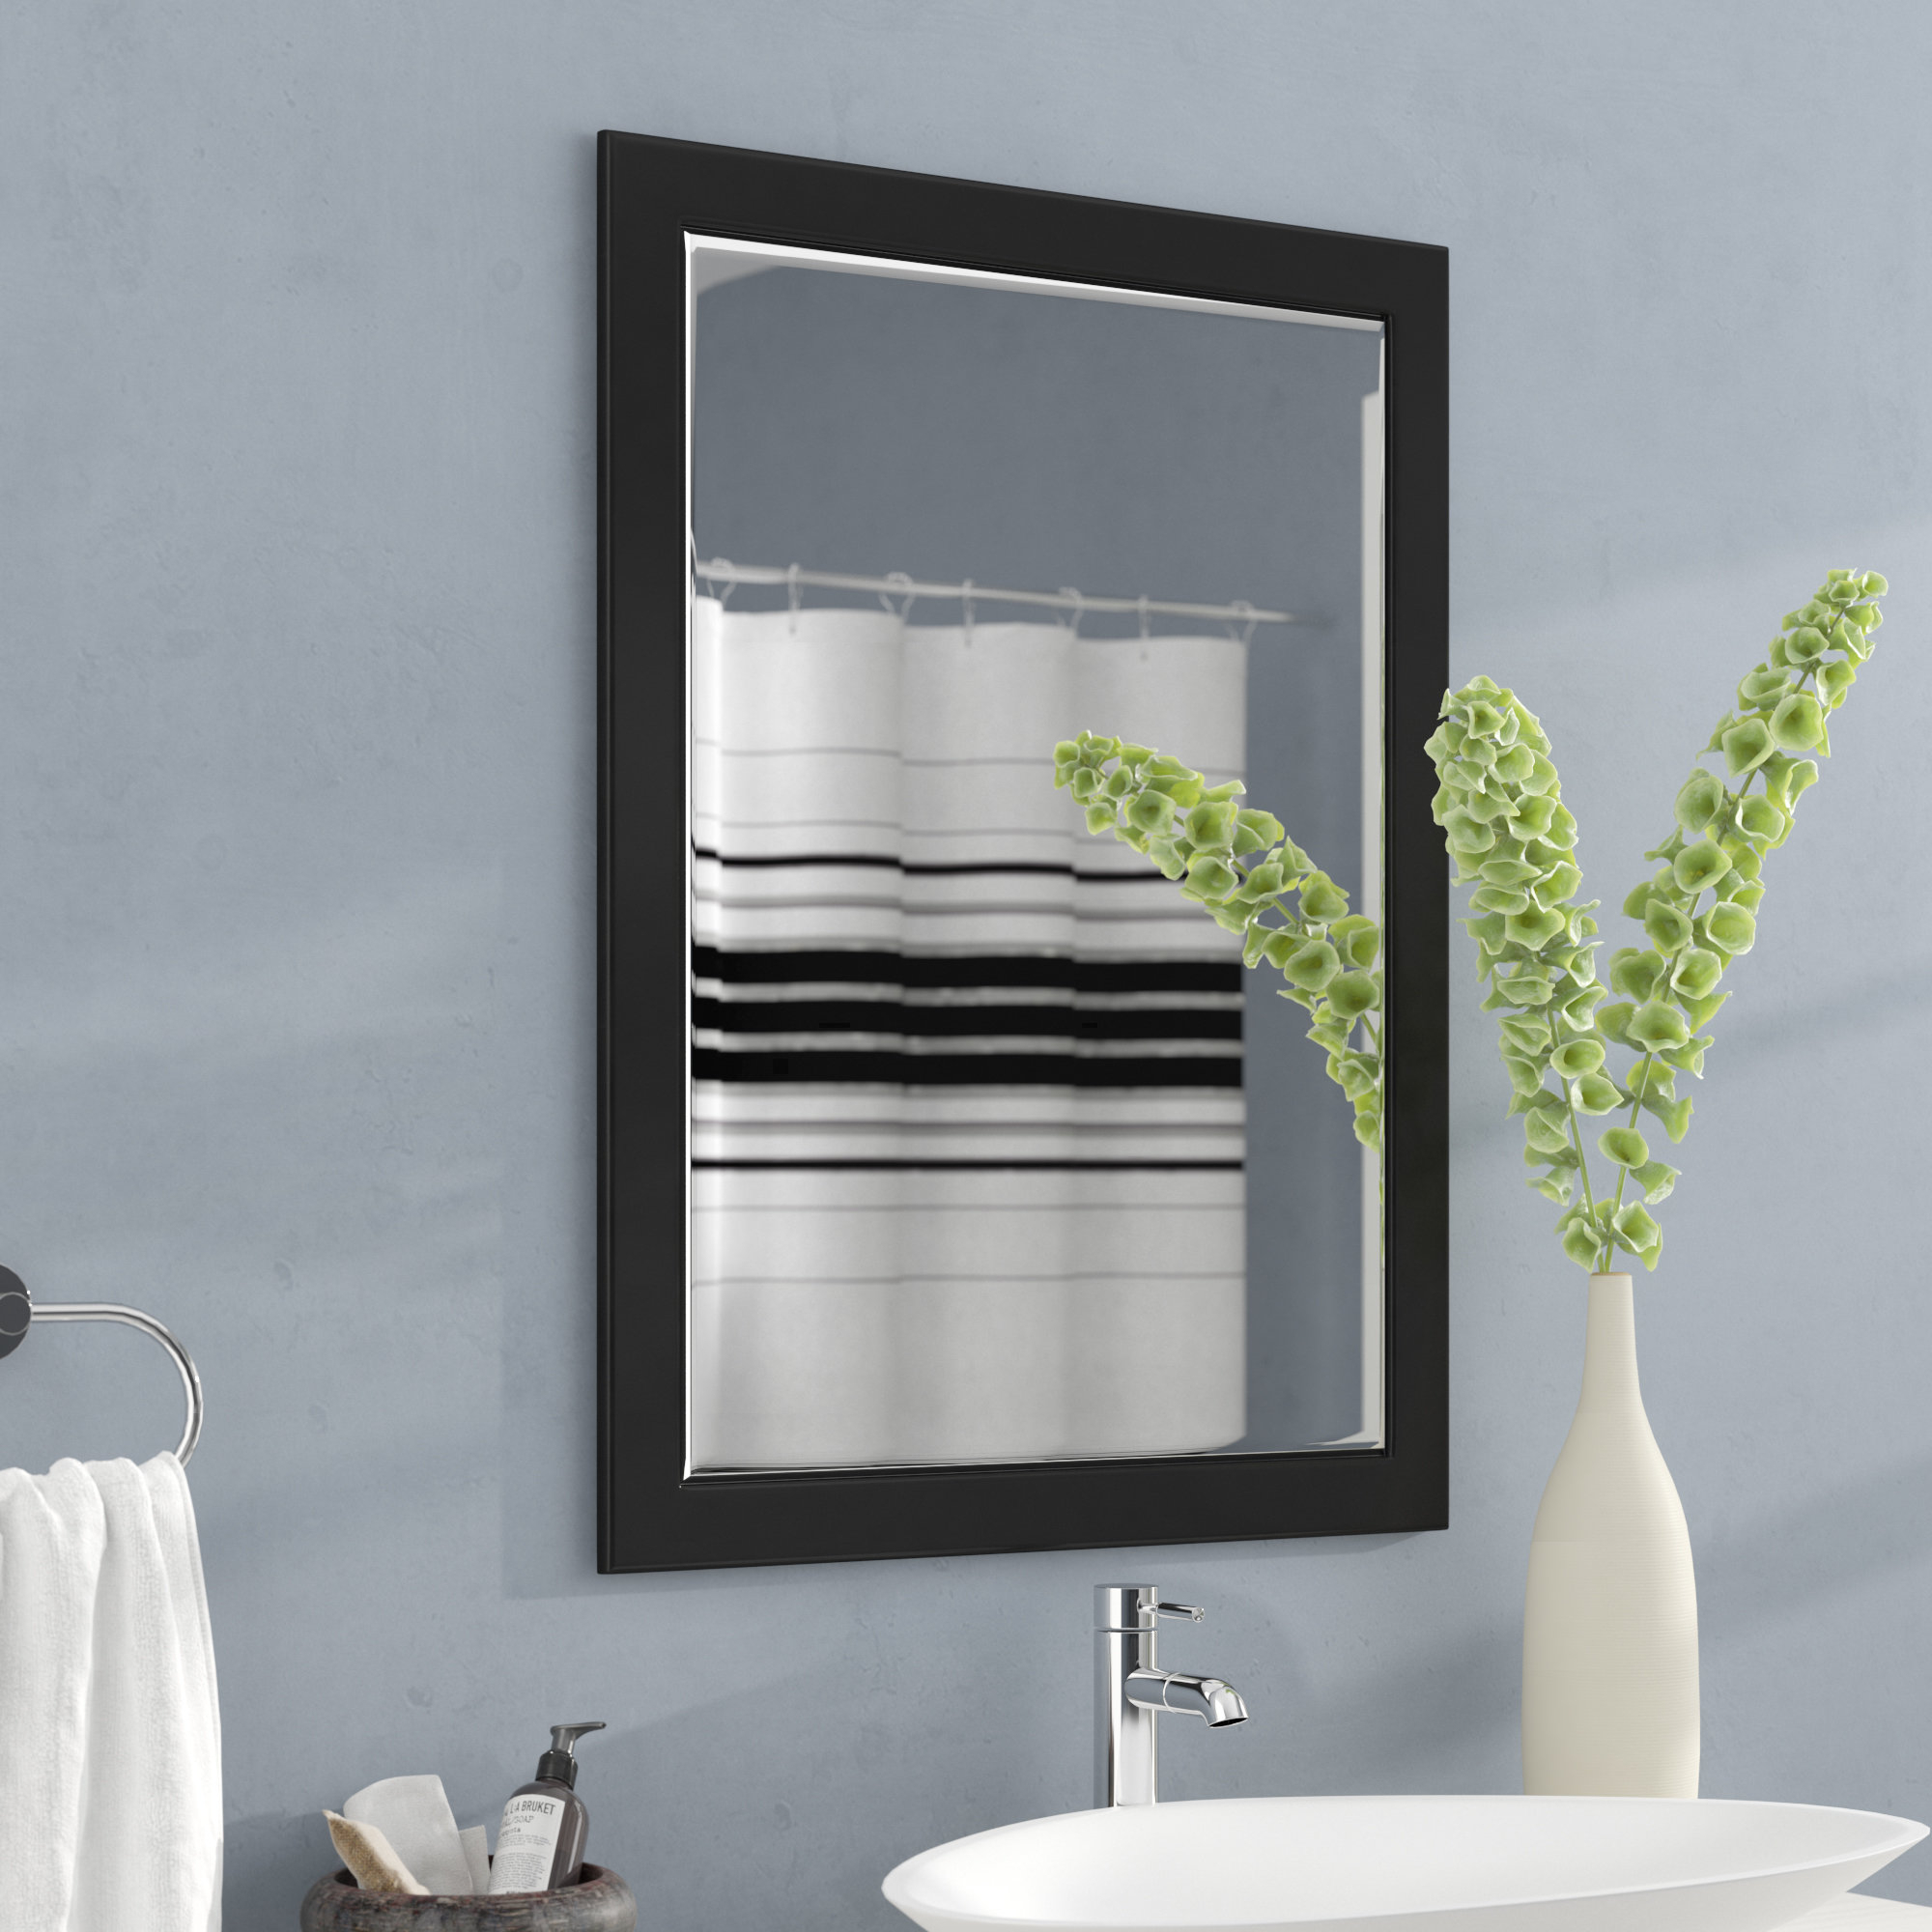 Chelwood Modern Wall Mirror Pertaining To Tetbury Frameless Tri Bevel Wall Mirrors (View 13 of 20)